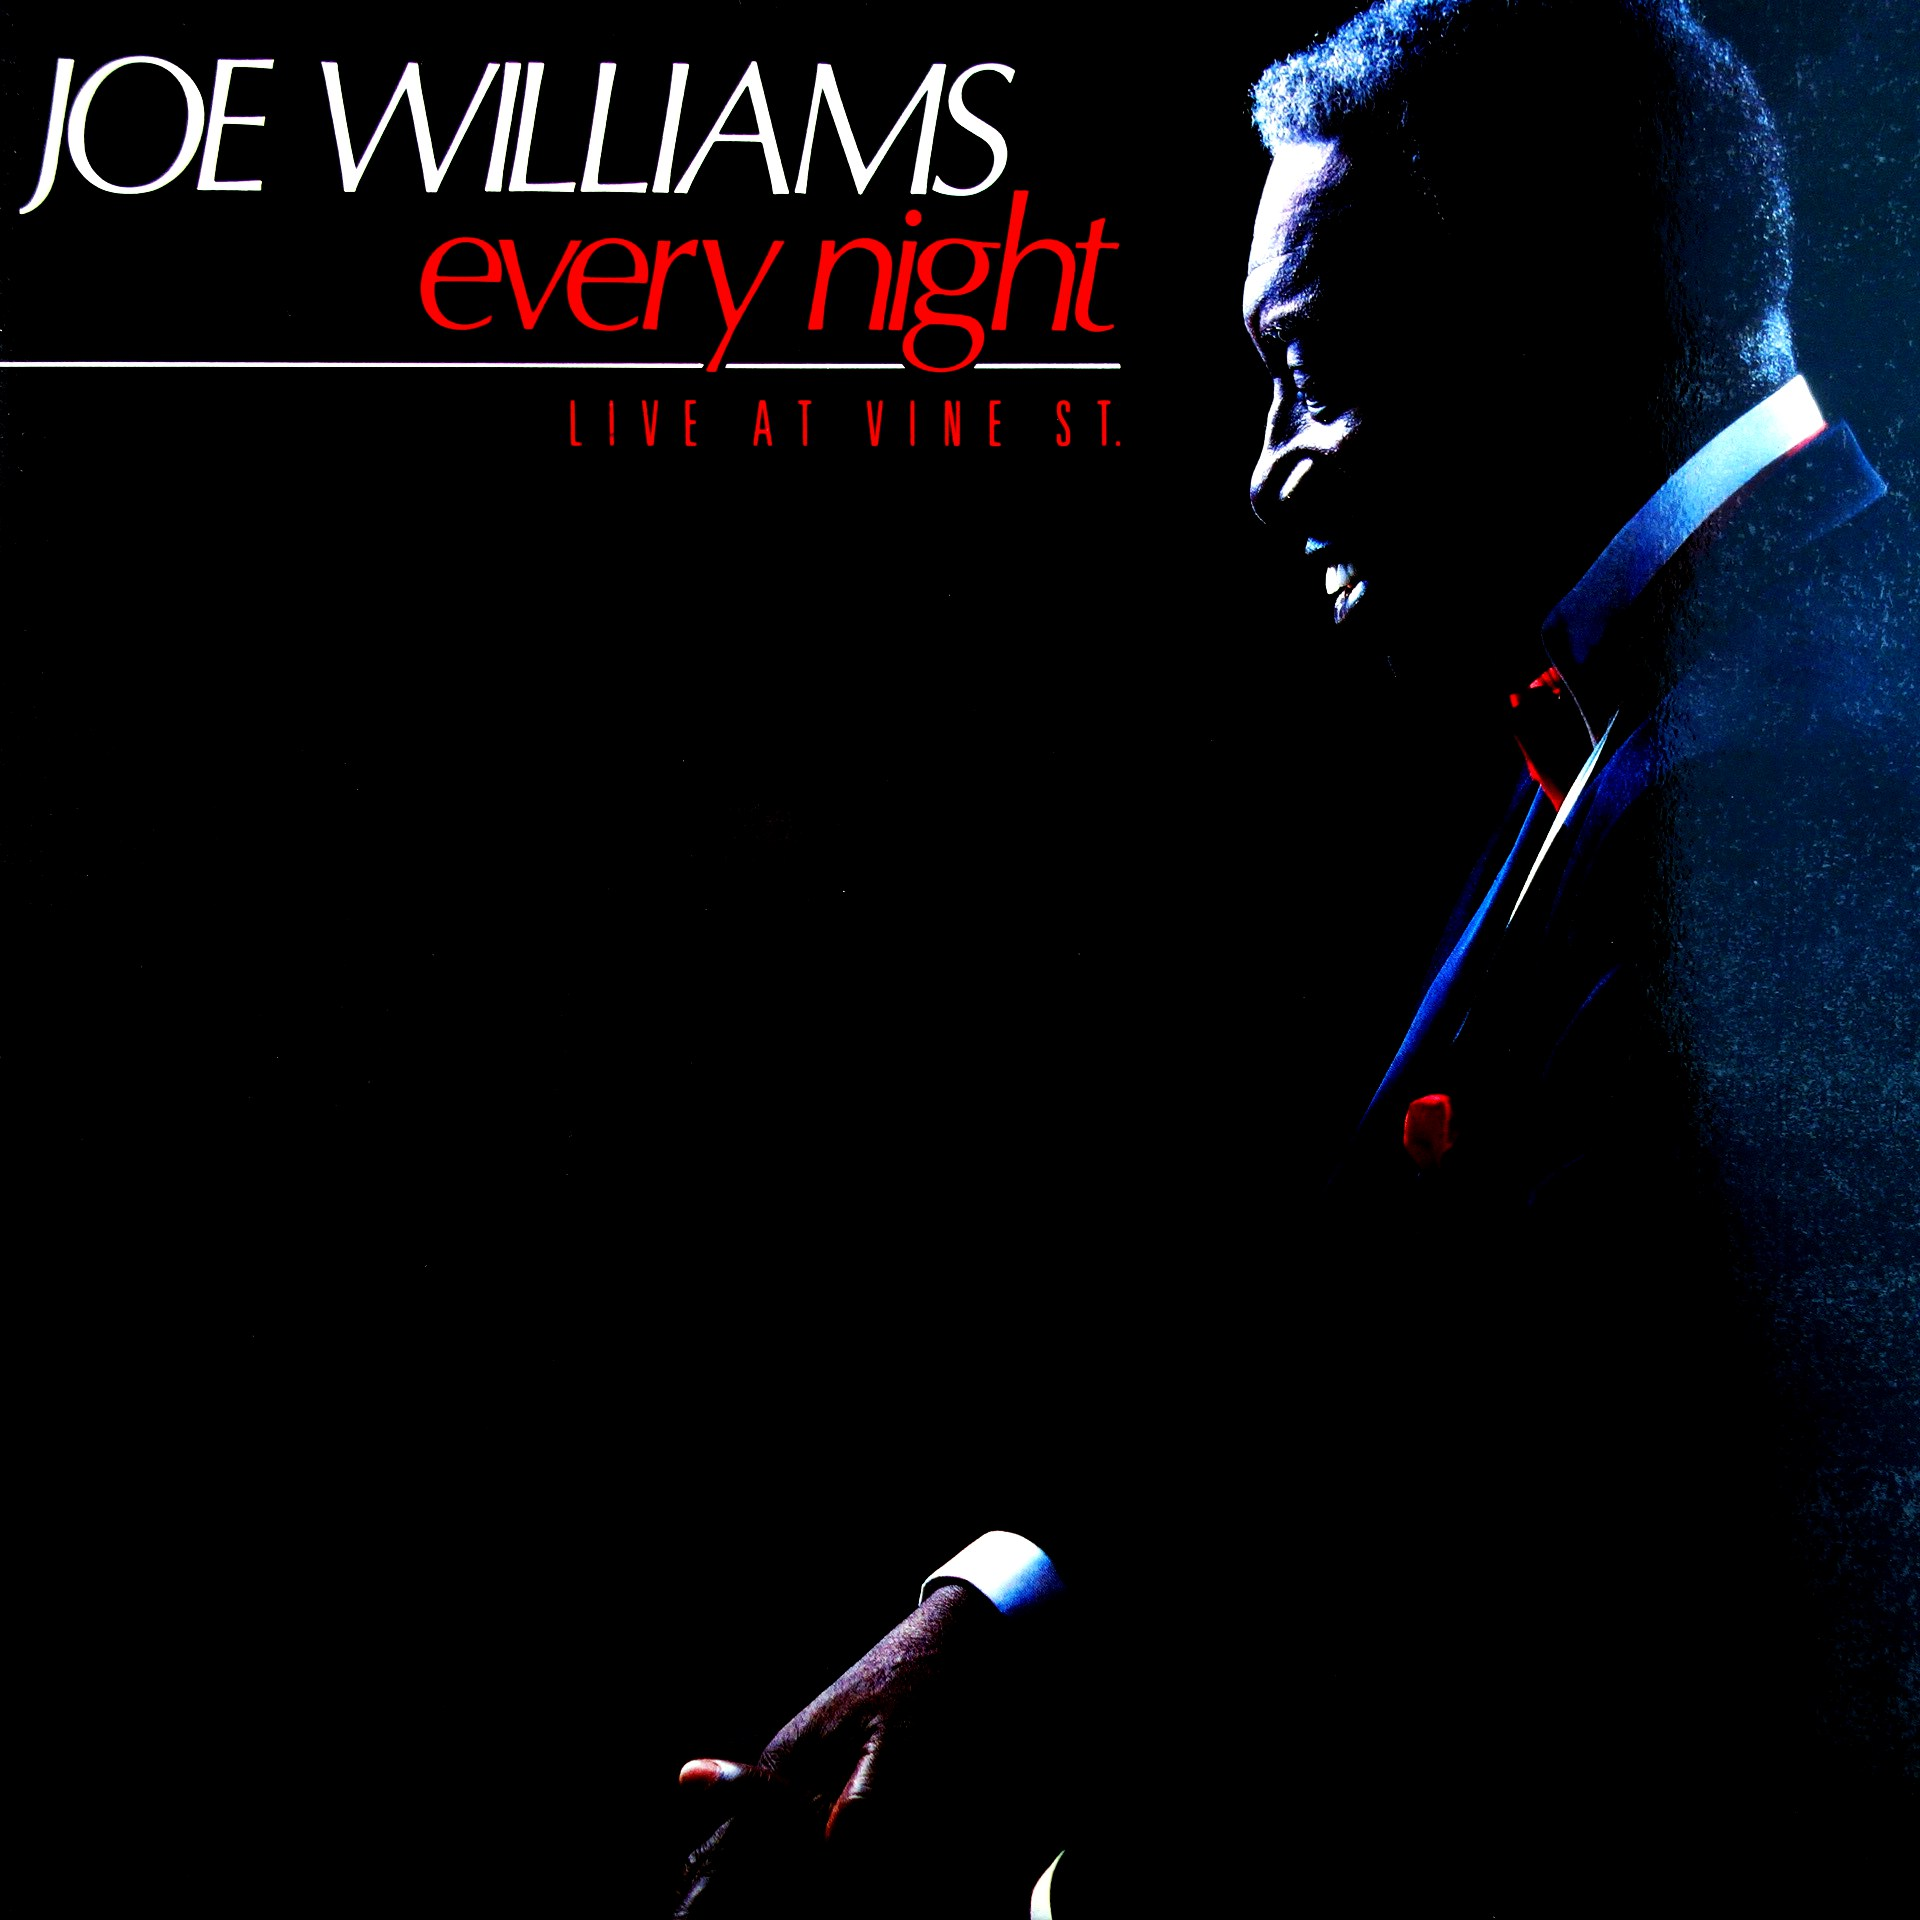 LP Joe Williams ‎– Every Night - Live At Vine St.